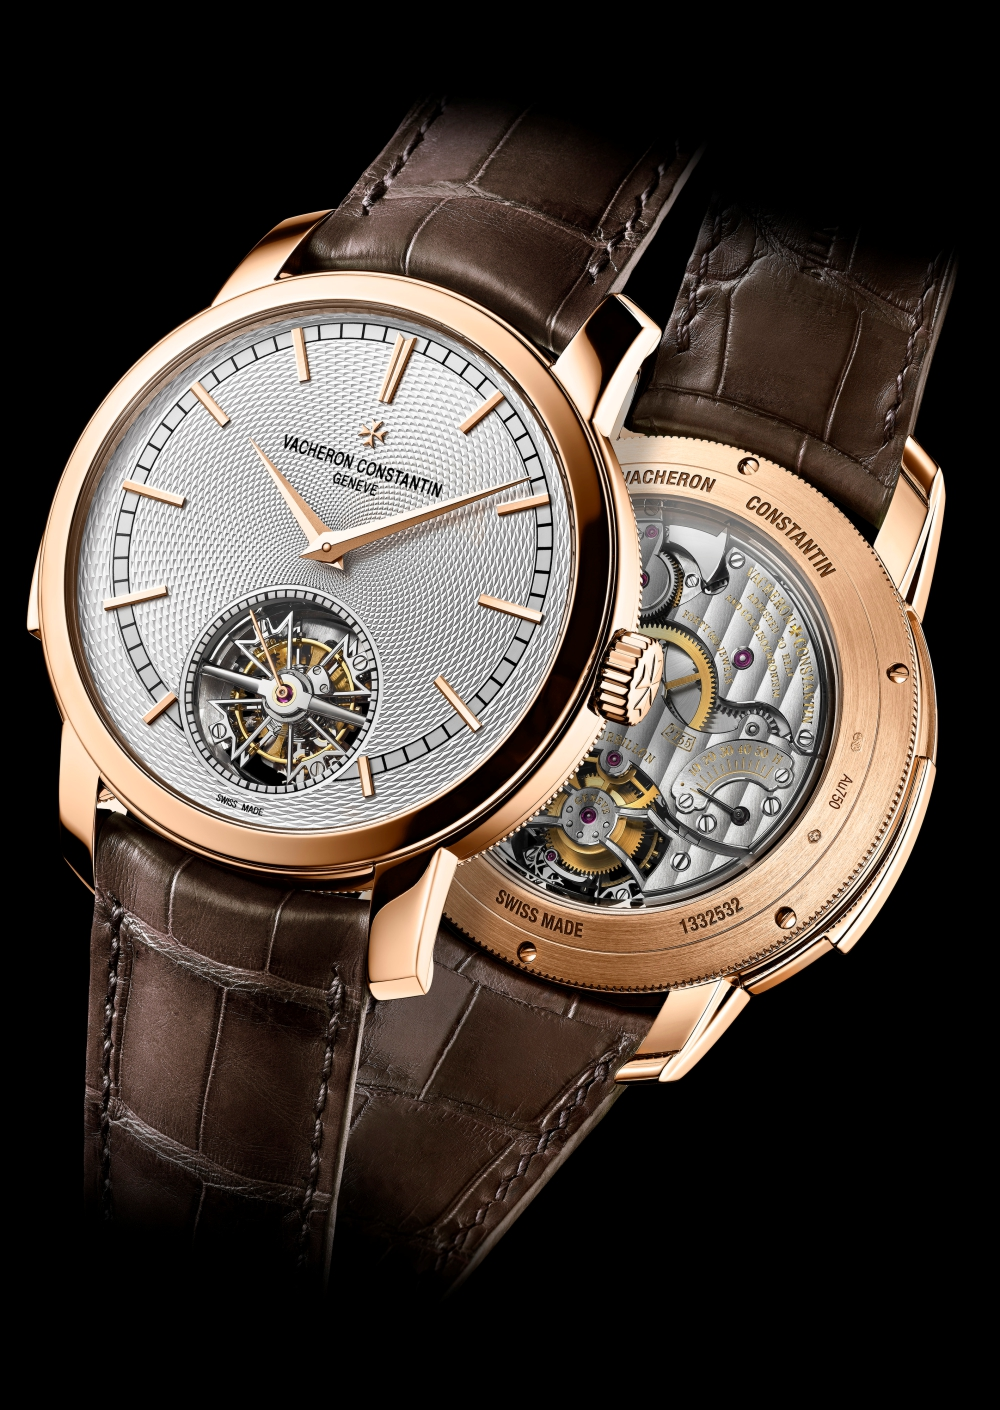 foto-3_vacheron_constantin_traditionnelle_-tourbillon_-repeticion-minutos_portada